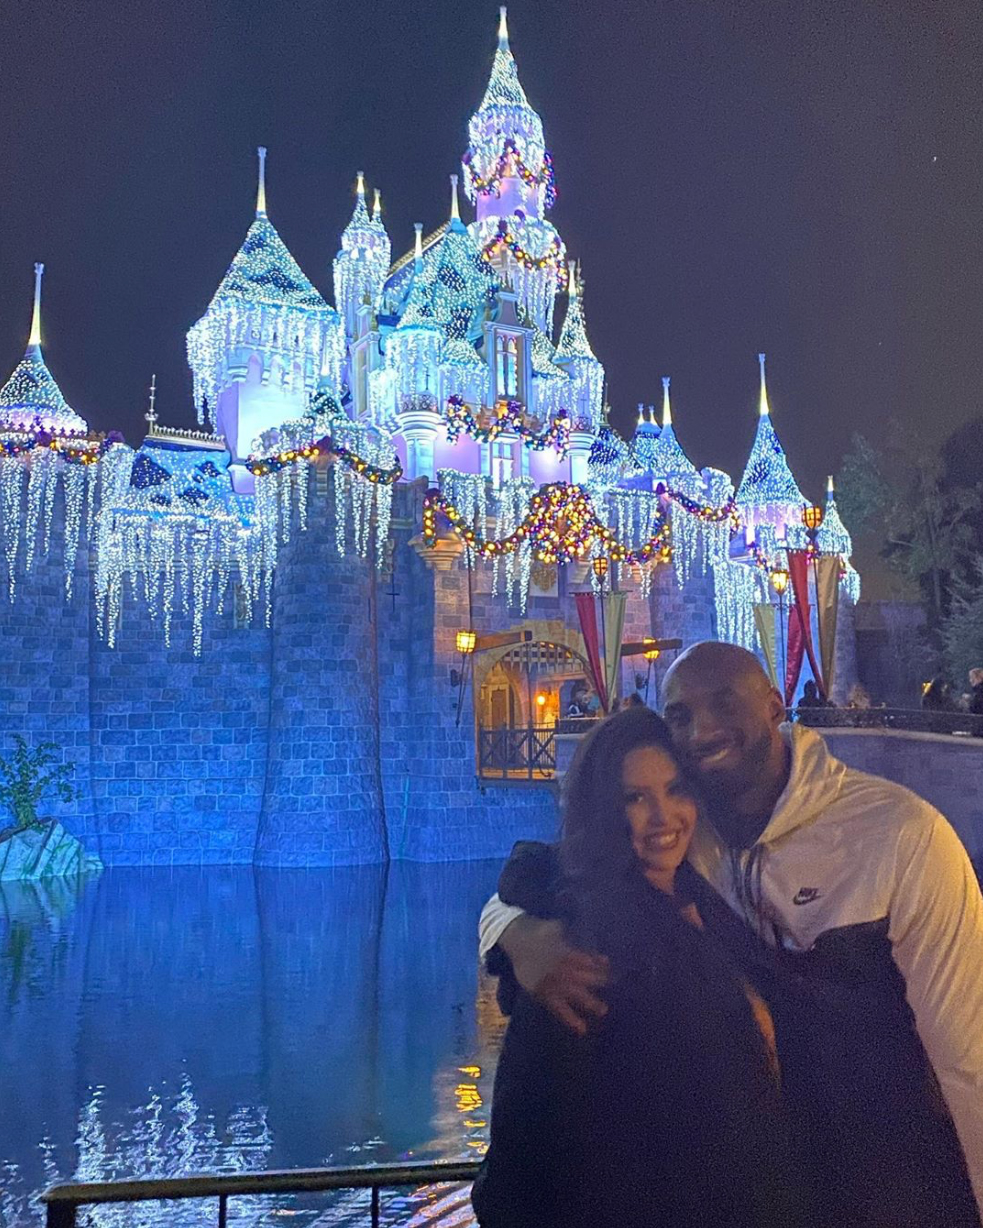 Kobe-Bryant-Celebrated-'Queen'-Vanessa-Bryant-on-Instagram-2-Months-Before-His-Death